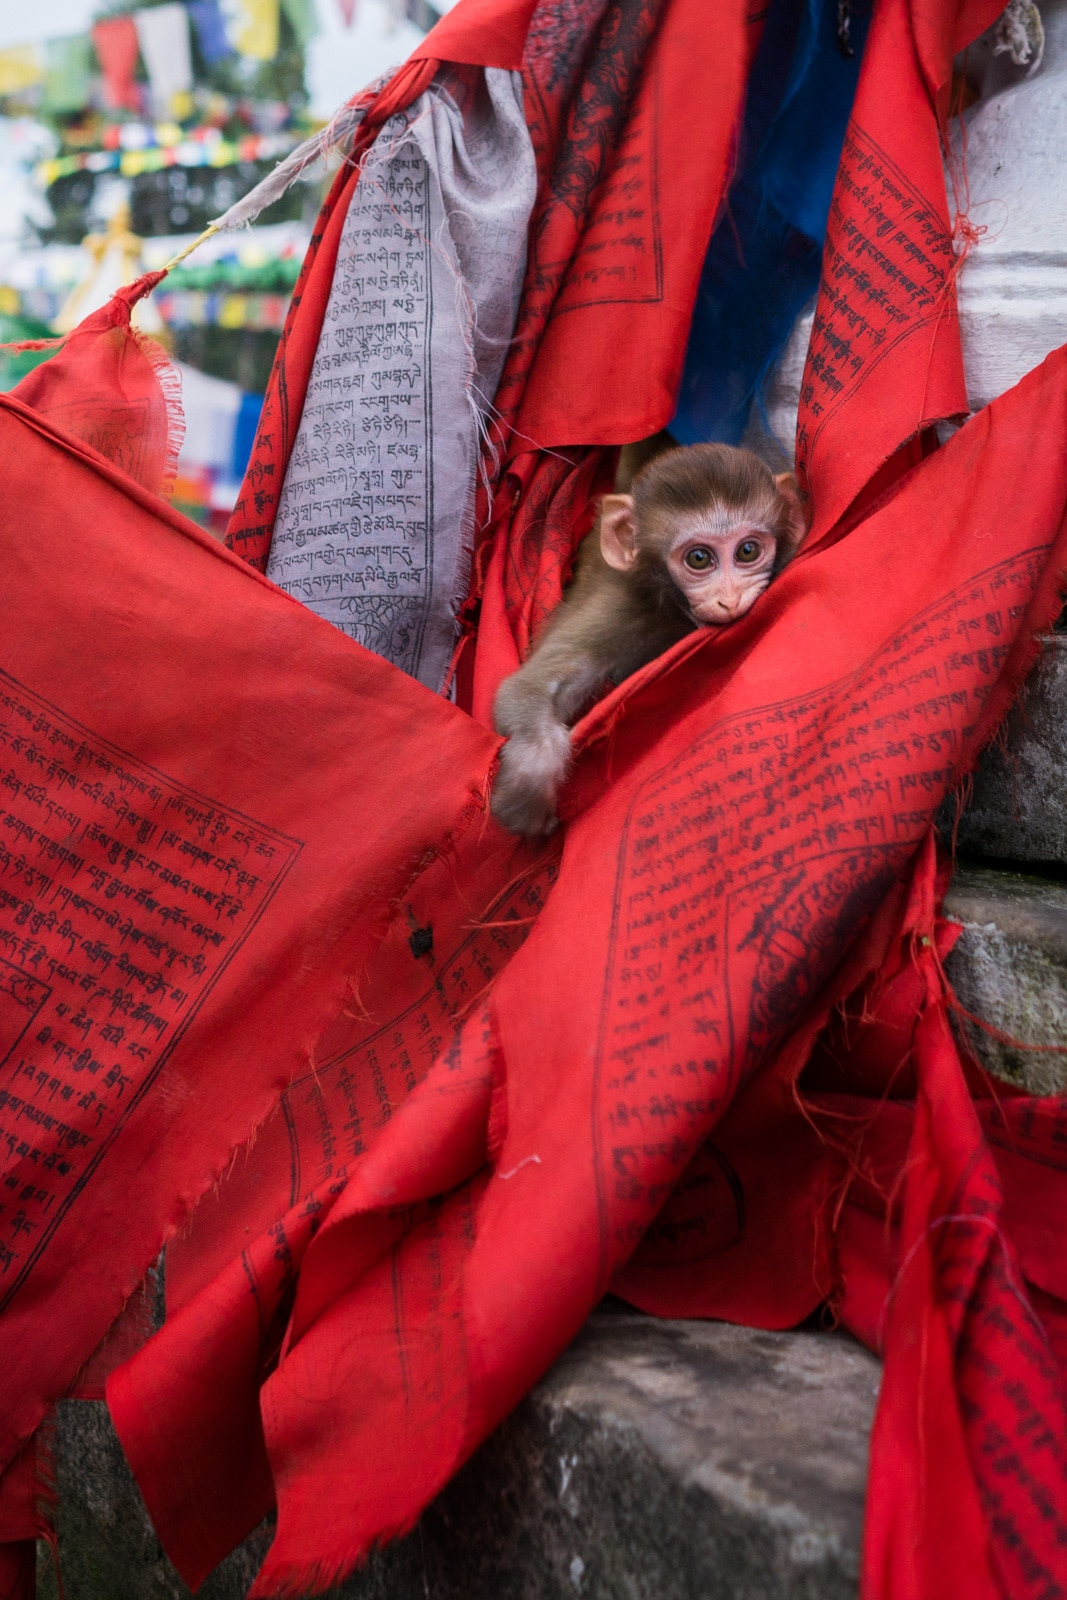 A baby rhesus monkey hanging out on Buddhist prayer flags at the Monkey Temple in Kathmandu, Nepal. A must-visit place for anyone traveling in Nepal during monsoon.